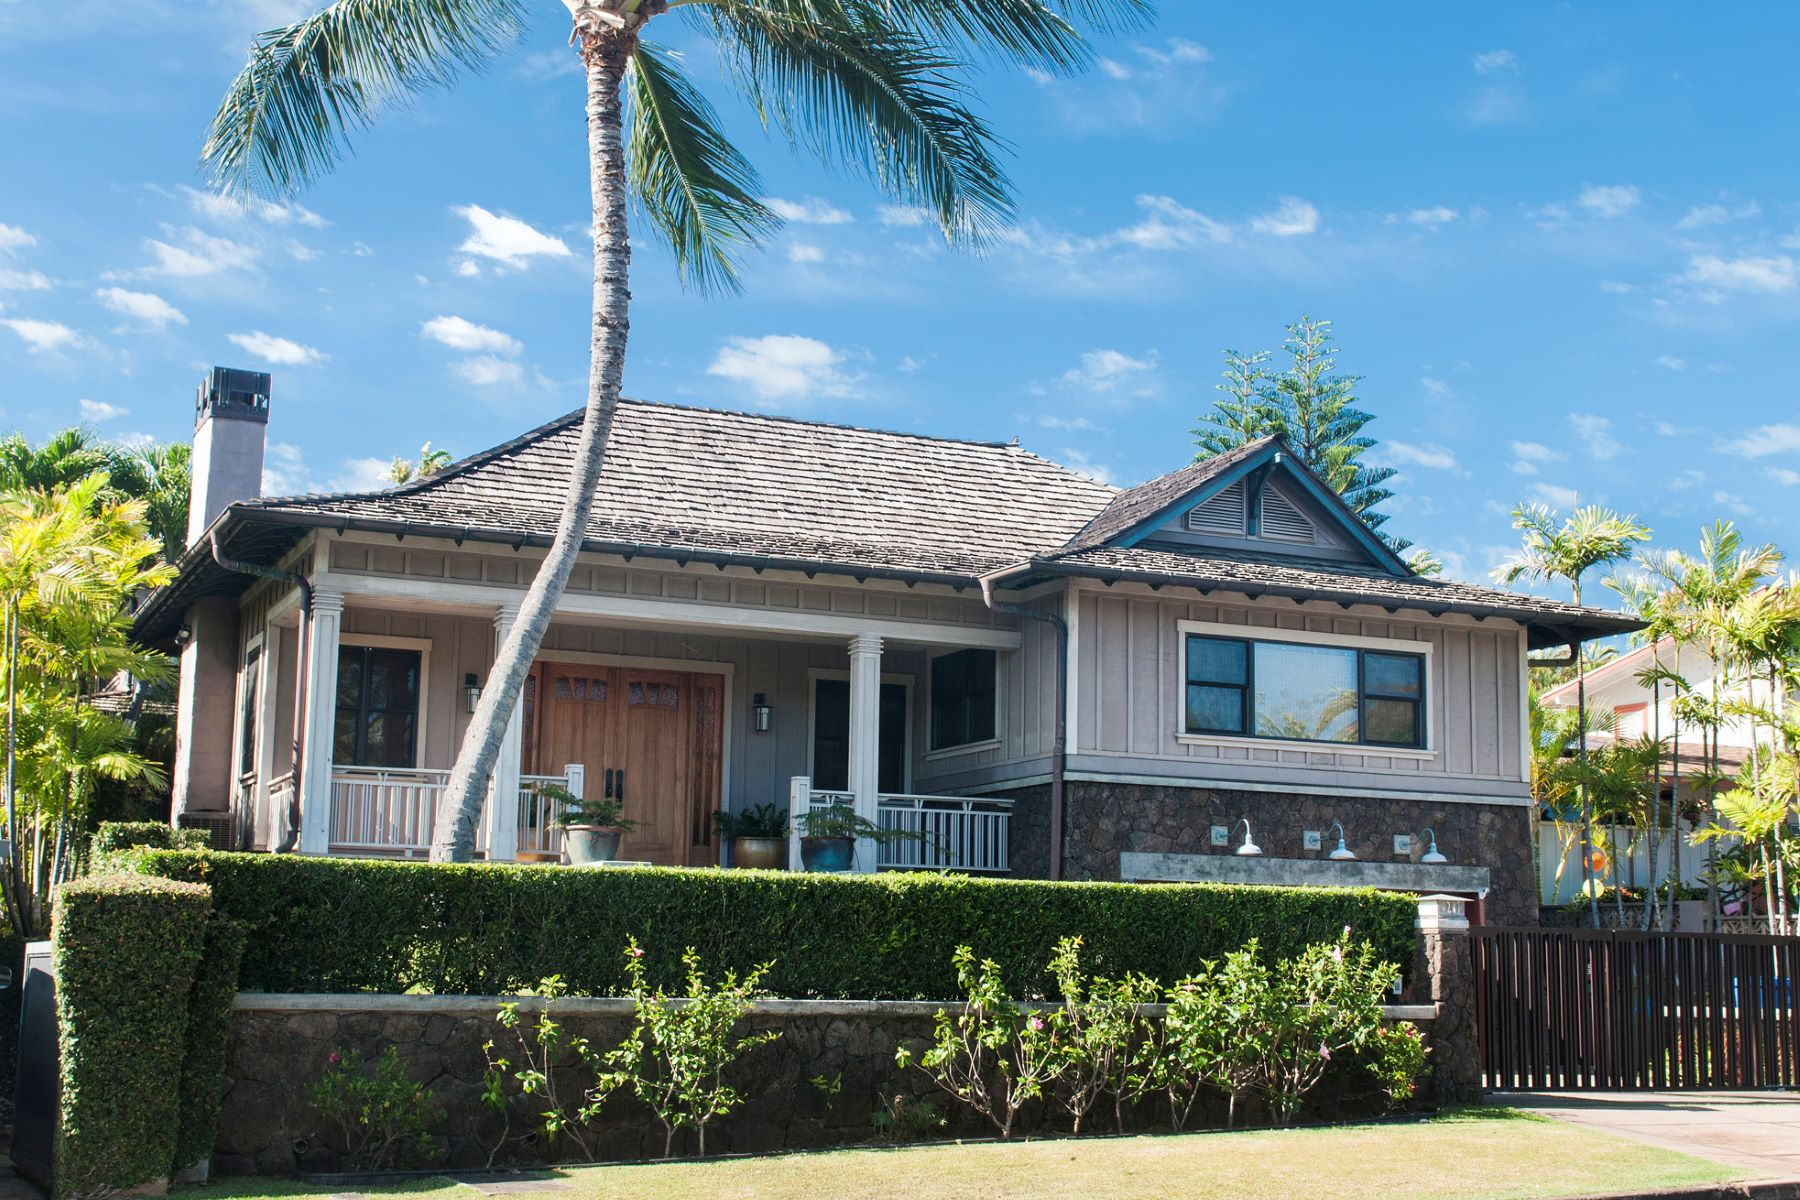 Single Family Home for Sale at Timeless Superior Features 4287 Kahala Avenue Honolulu, Hawaii 96816 United States